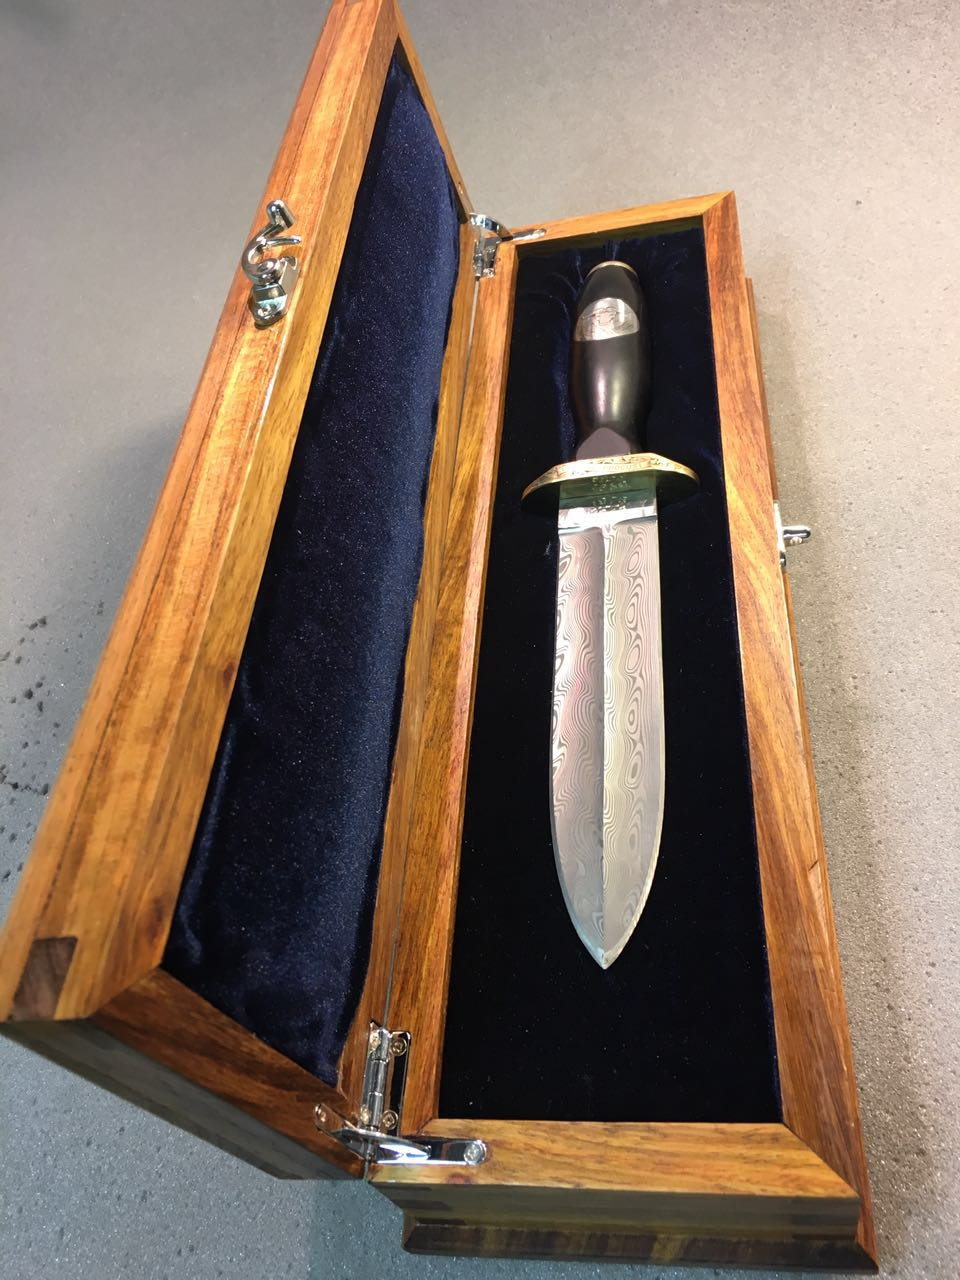 40 Year Commemorative dagger 32 Battalion